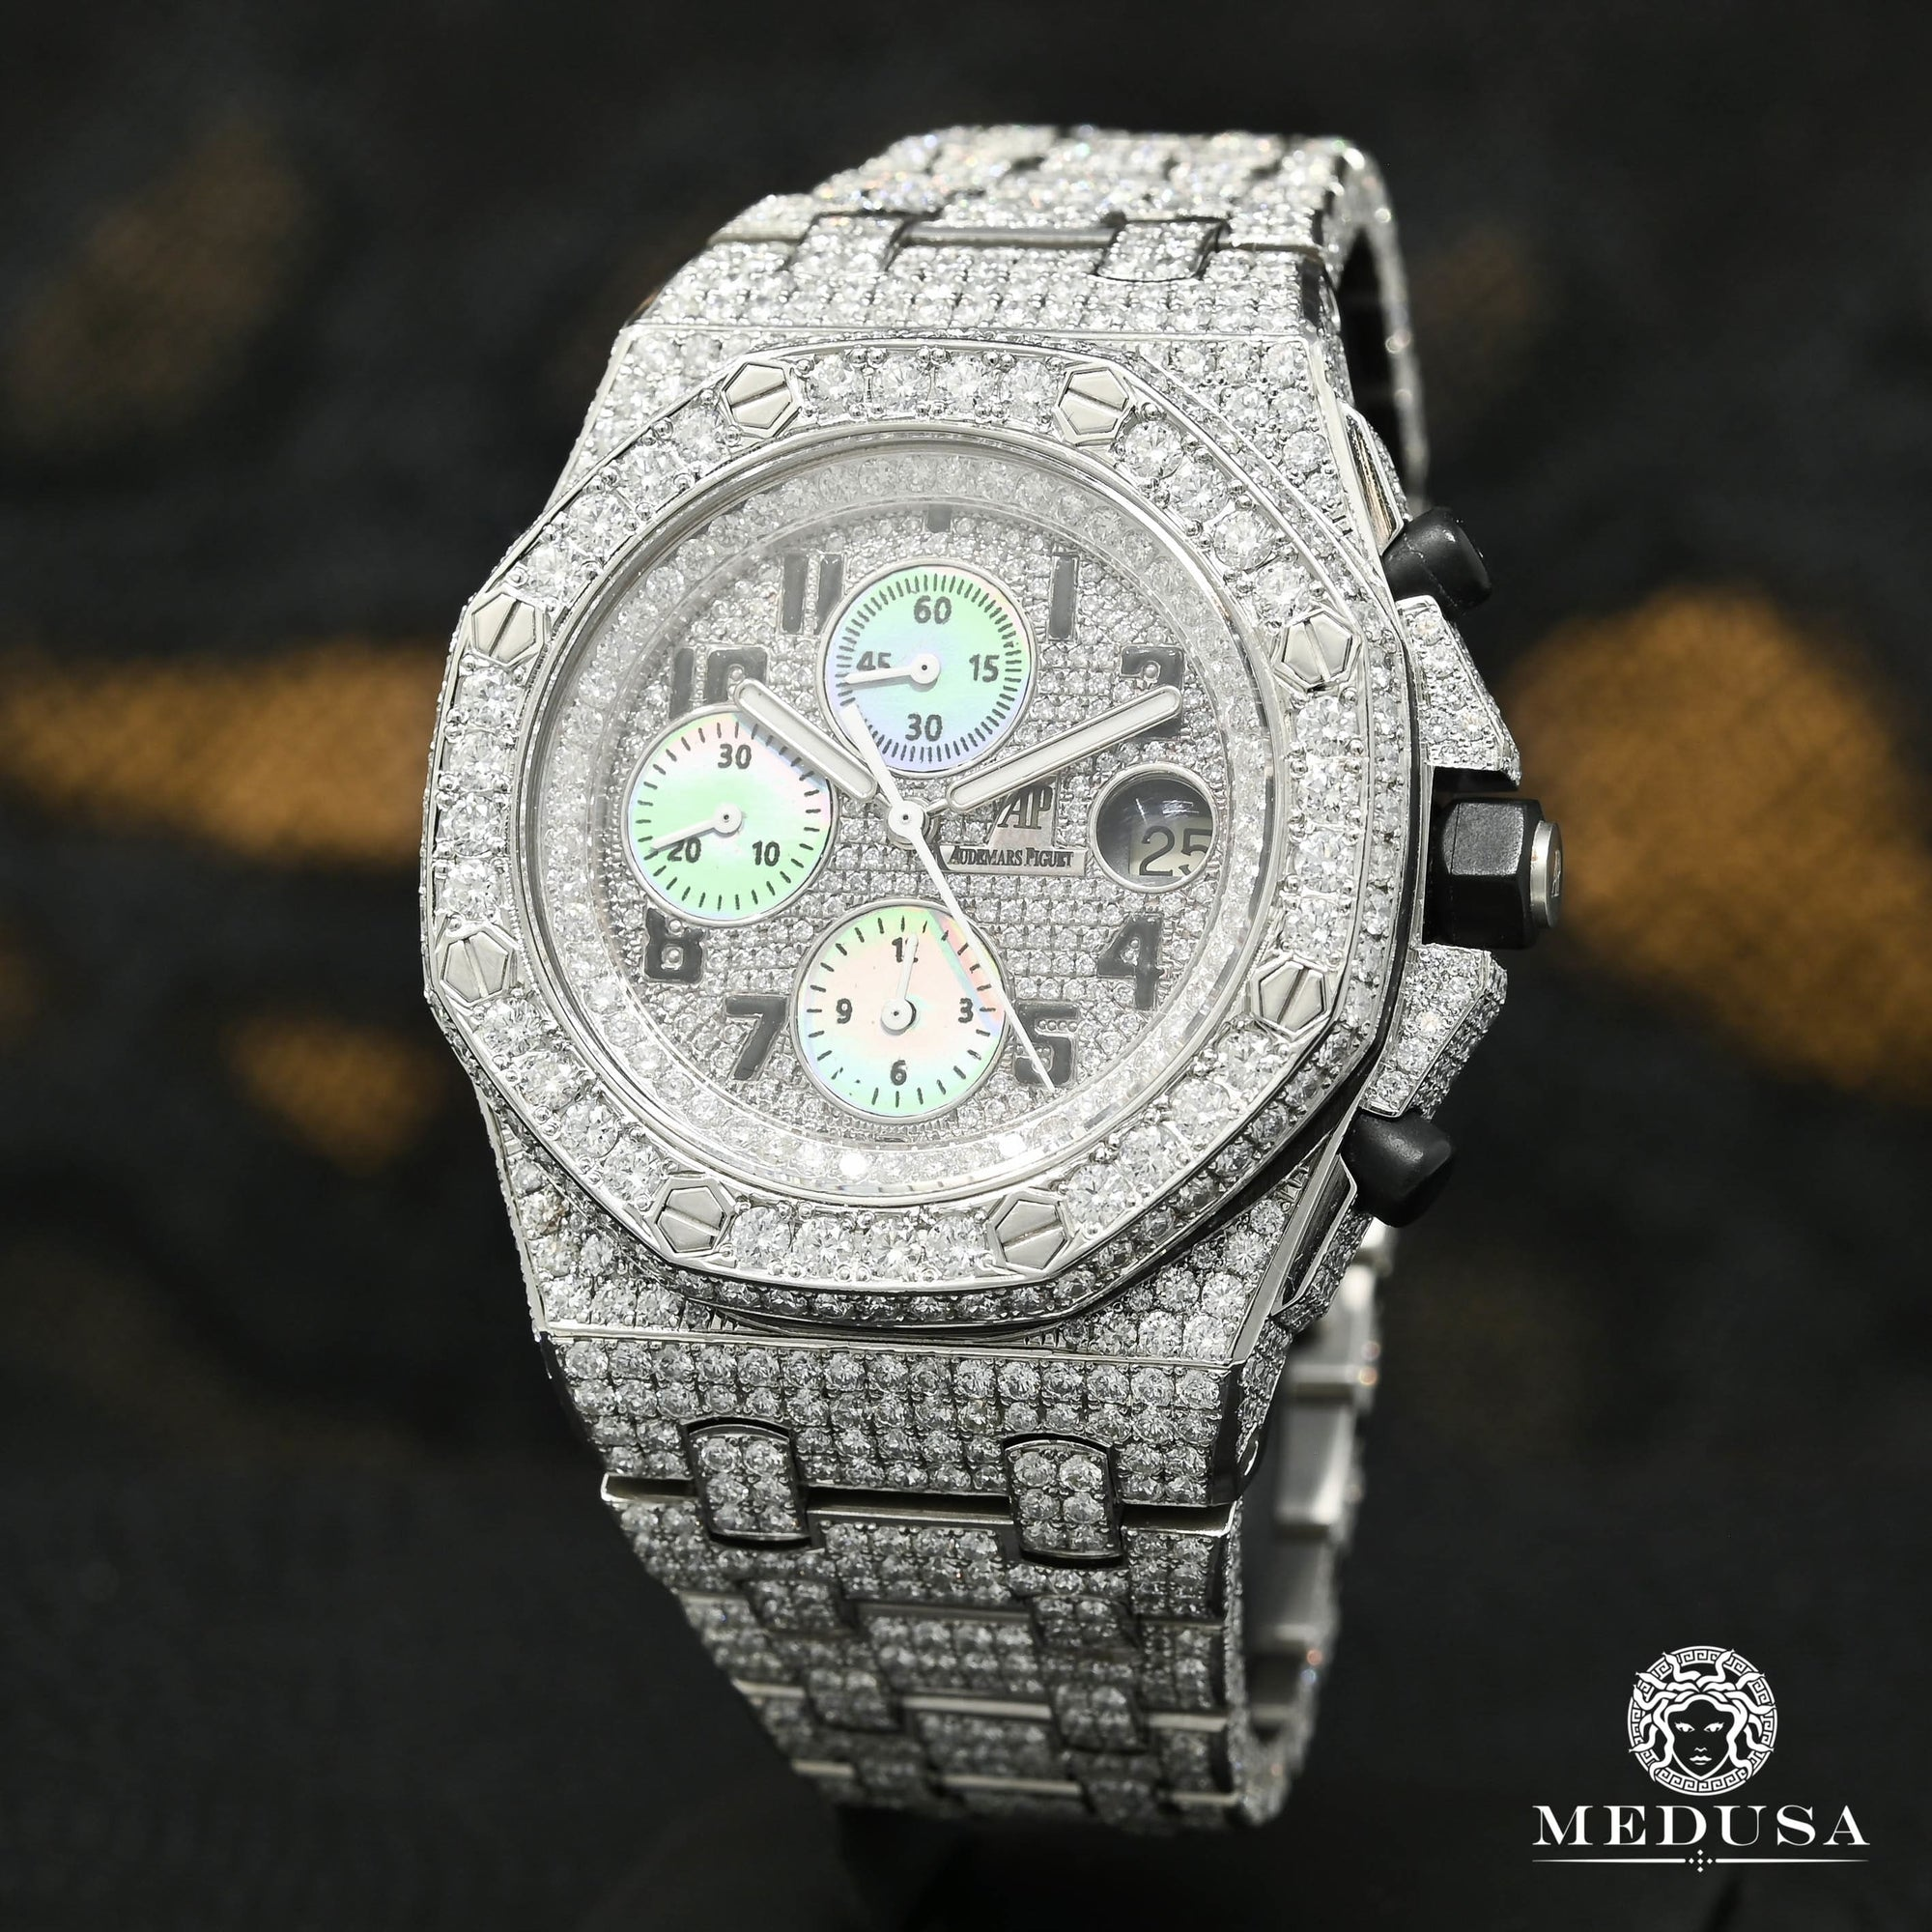 42mm Audemars Piguet Offshore - Iced